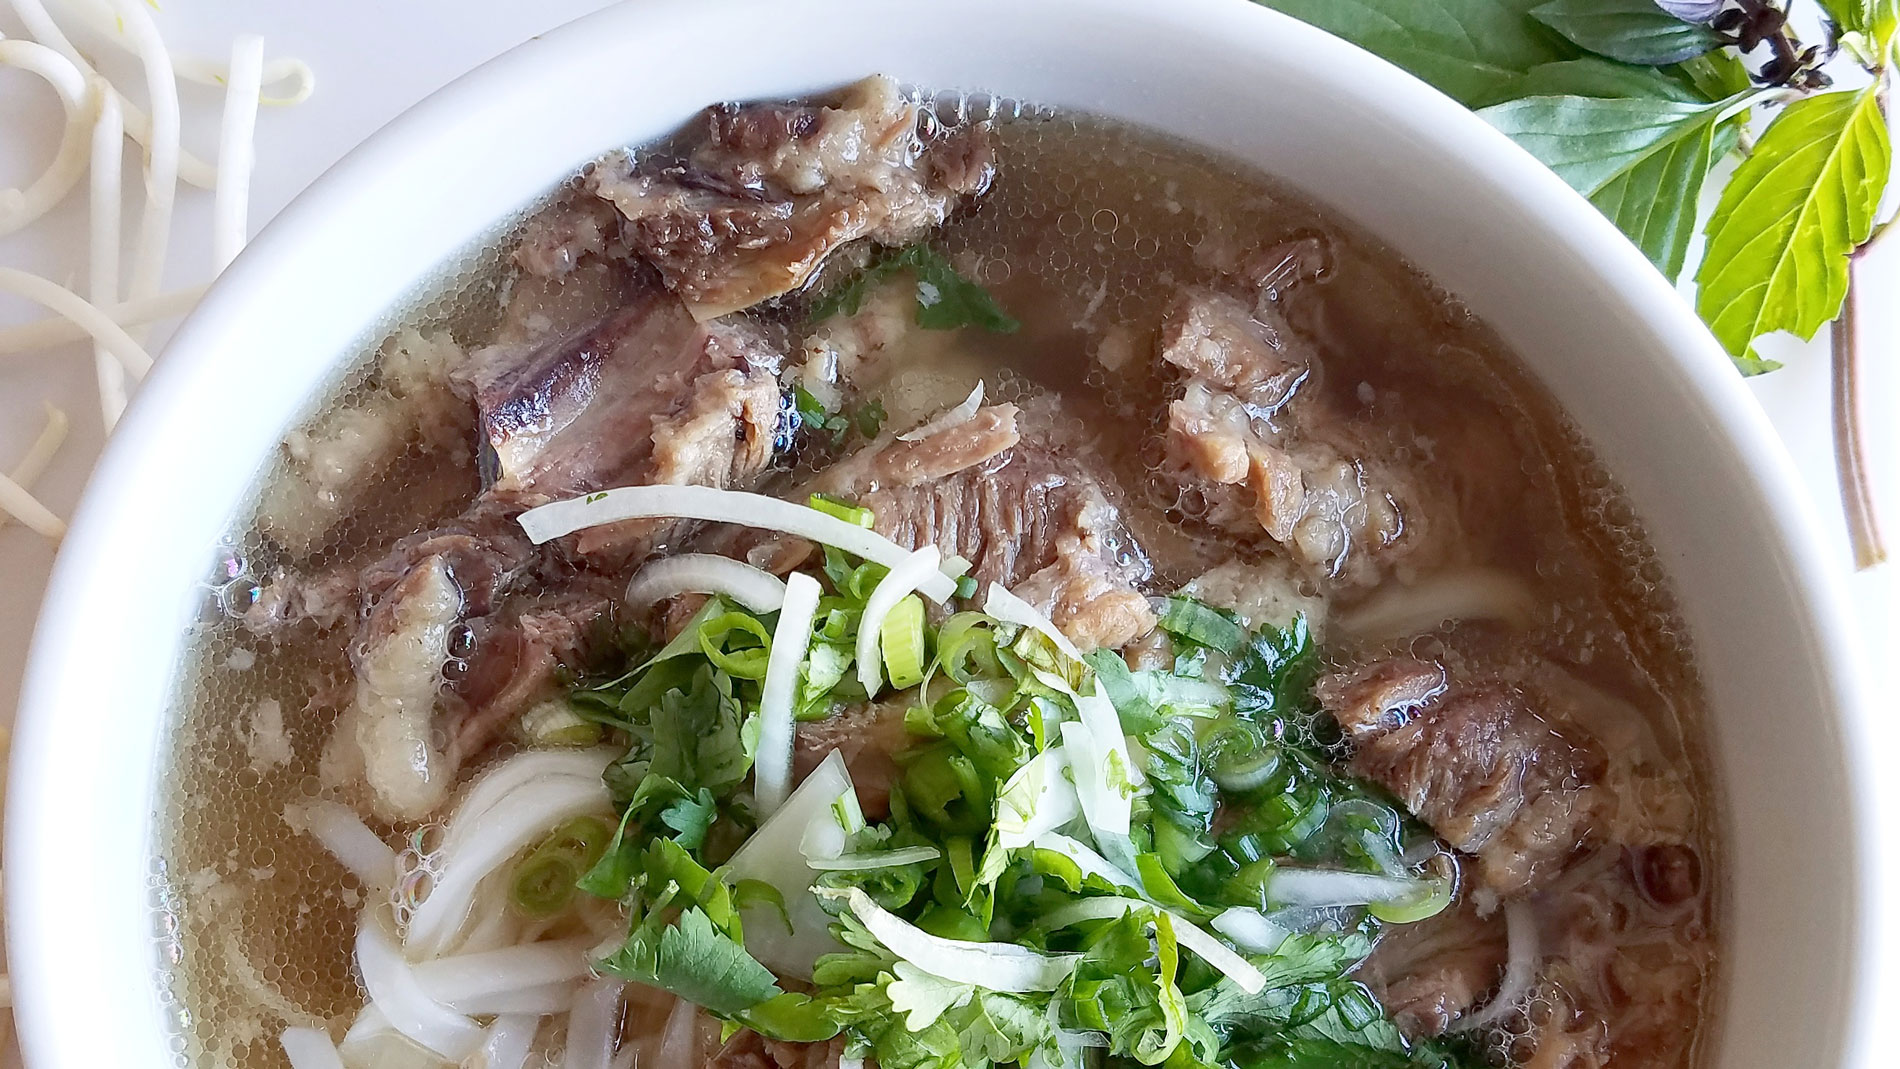 L.A.'s Best New Bowl of Pho Is Off-Menu